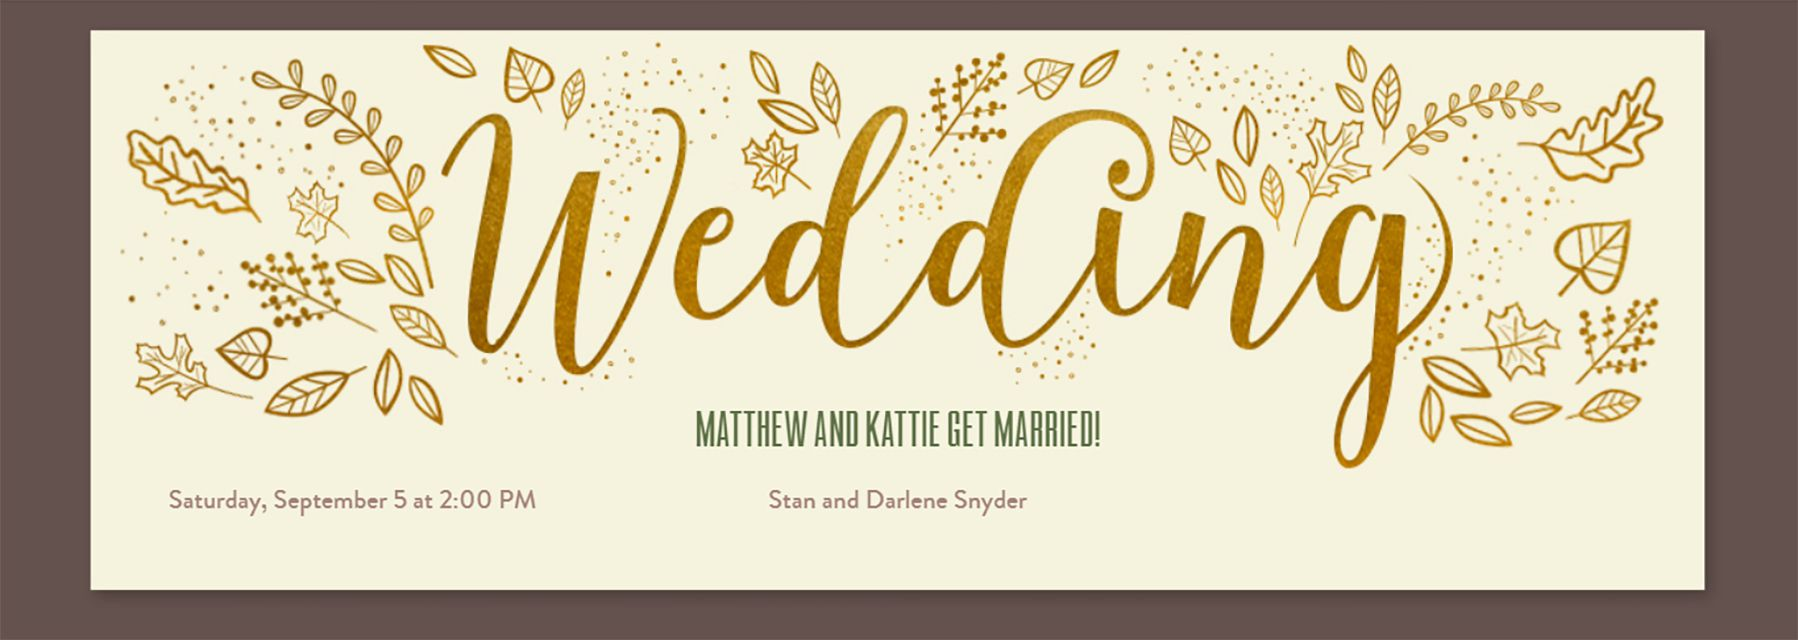 Marriage invitation card online free